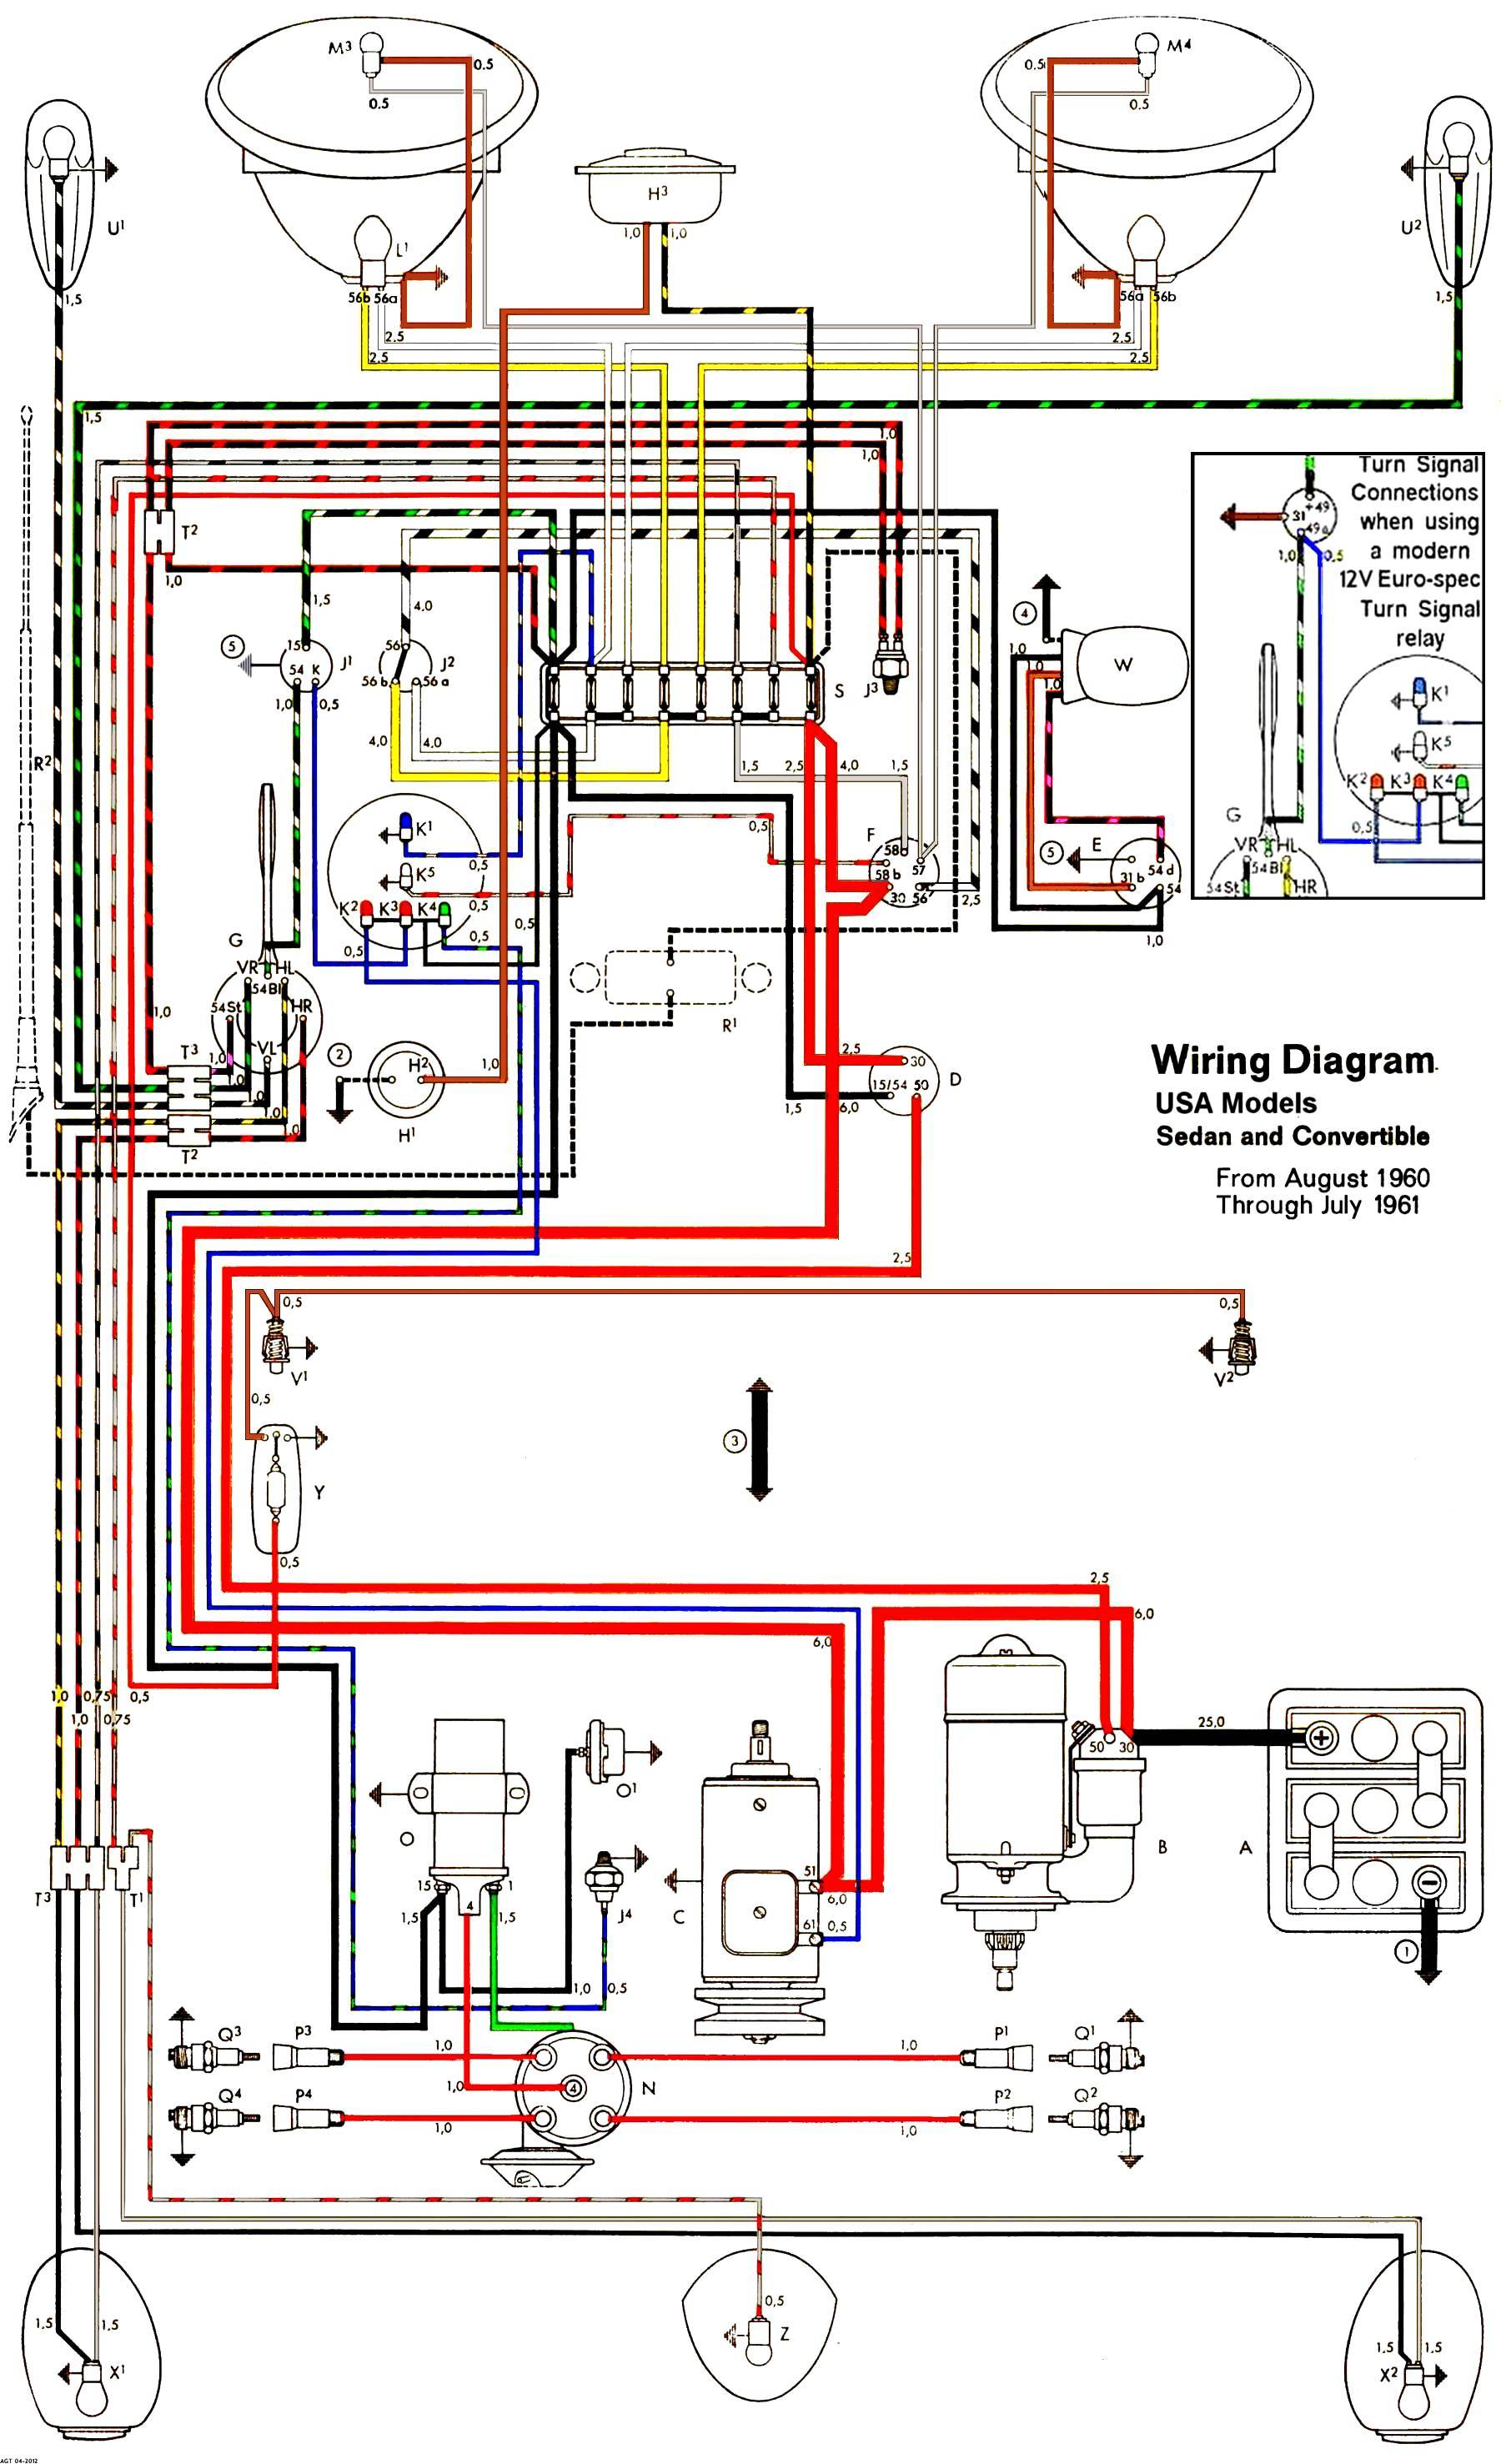 thesamba com type 1 wiring diagrams Chevy Tail Light Wiring Harness GMC Tail Light Wiring Diagram